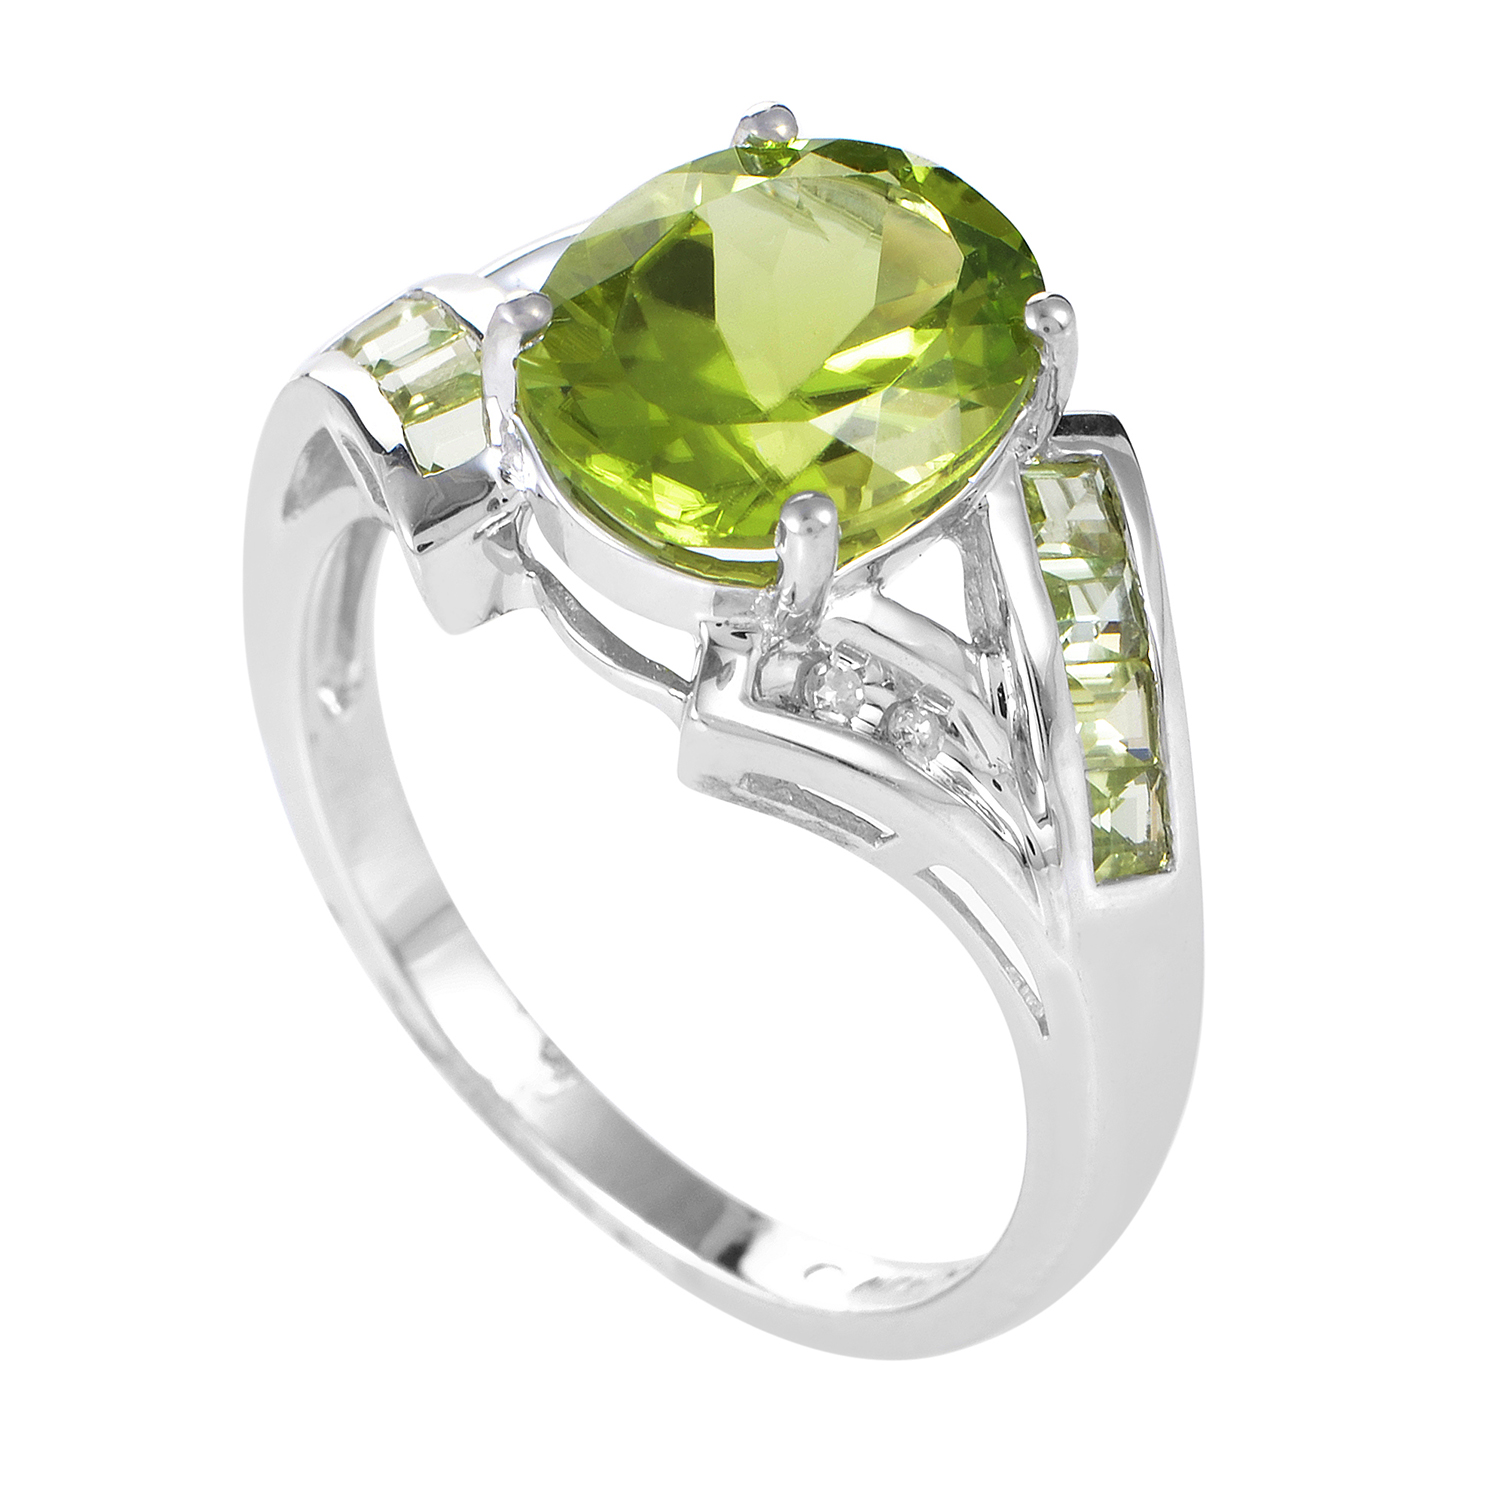 Women's 14K White Gold Diamond & Peridot Ring LP4-01389WPE